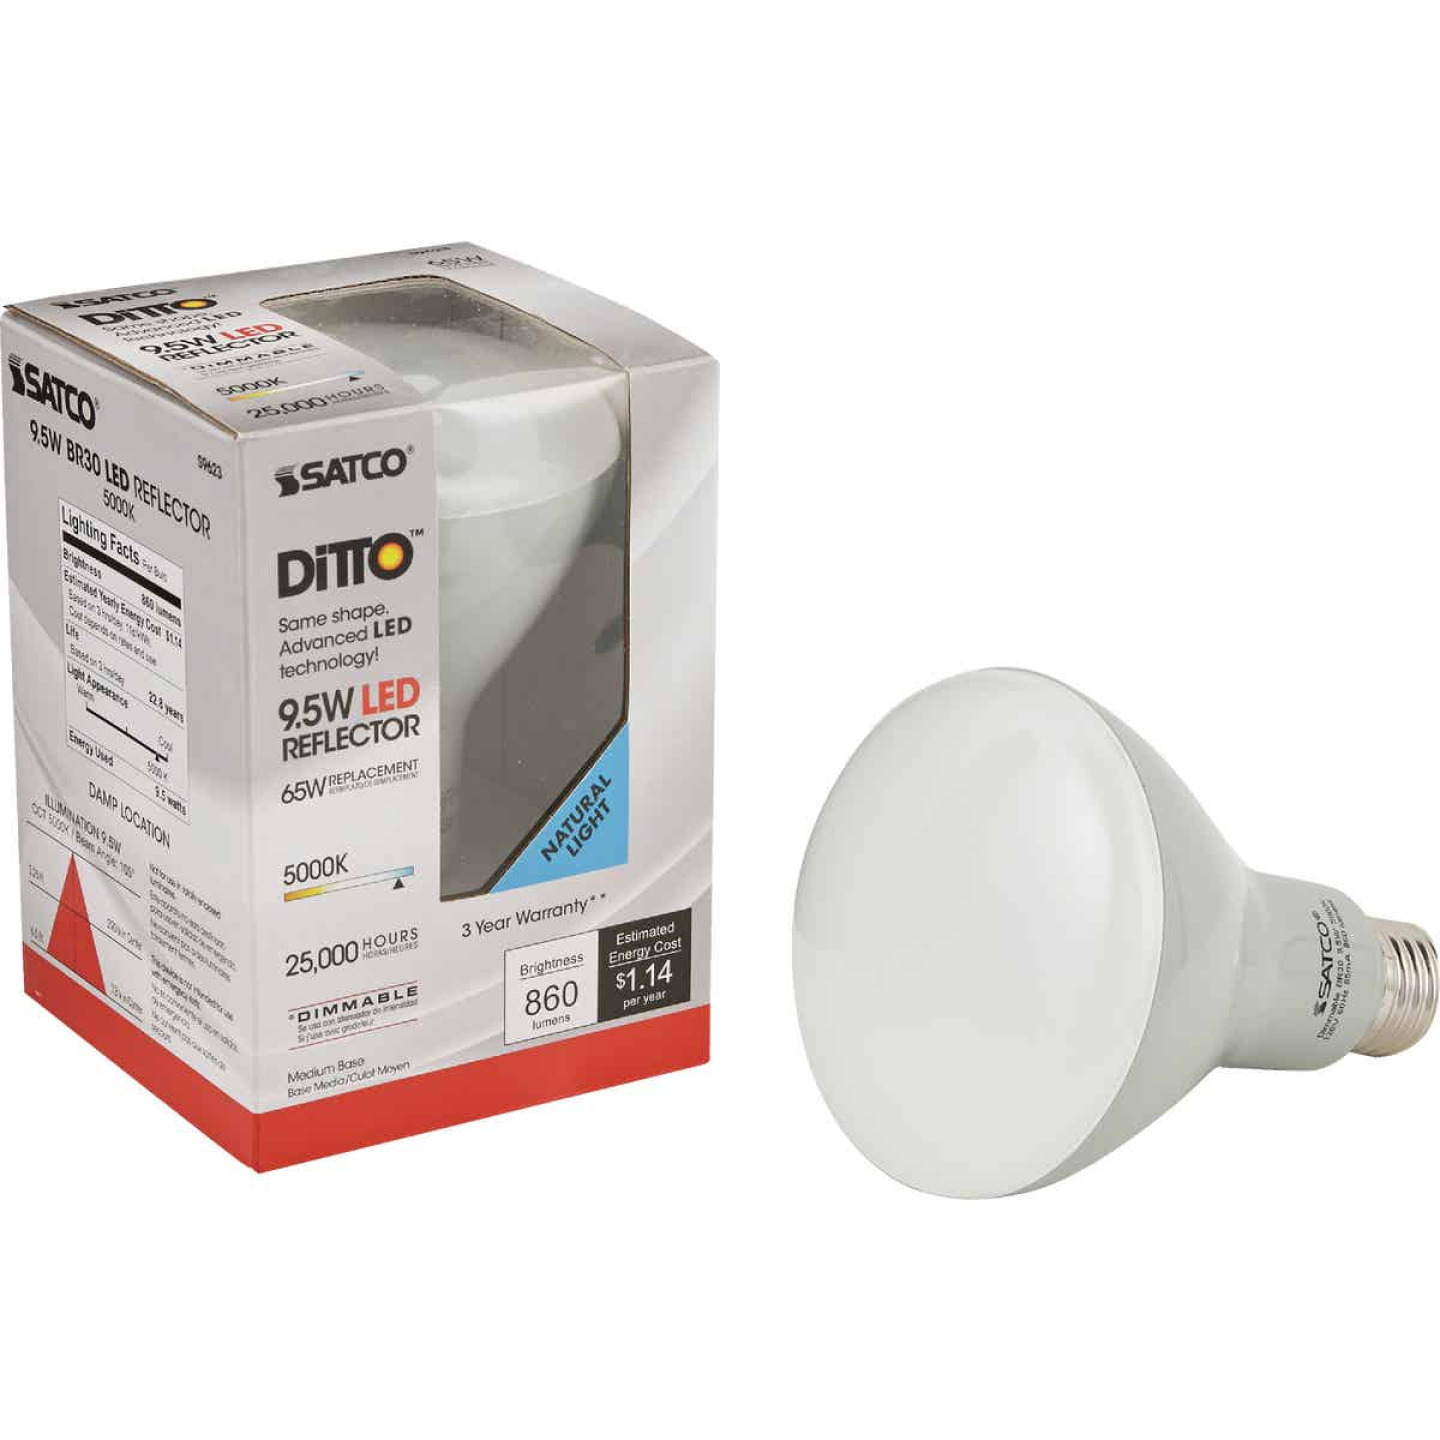 Satco Ditto 65W Equivalent Natural Light BR30 Medium Dimmable LED Floodlight Light Bulb Image 1